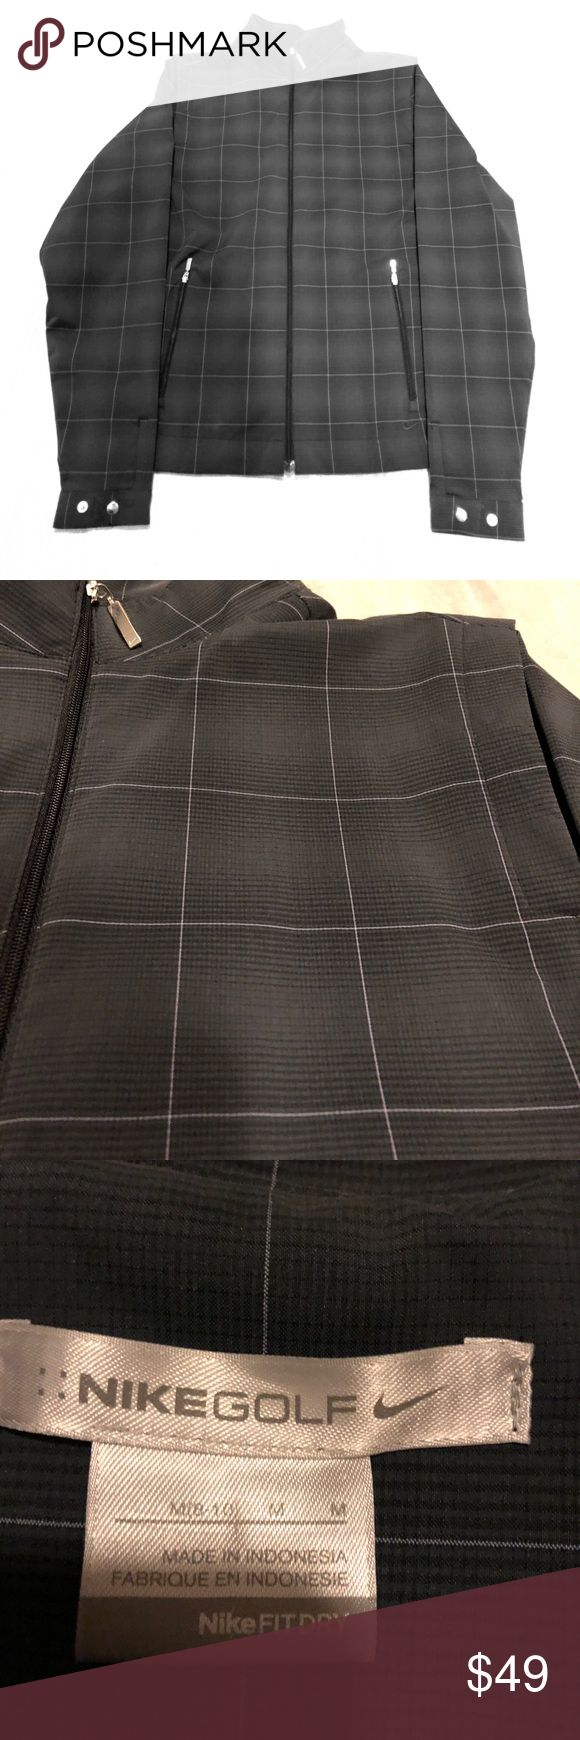 Like New Nike Golf Jacket Perfect jacket just too big for me. Size M (8-10) Nike Golf Jacket. Nike Fit Dry Technology. Colors are grey black and white pattern. Nike Jackets & Coats